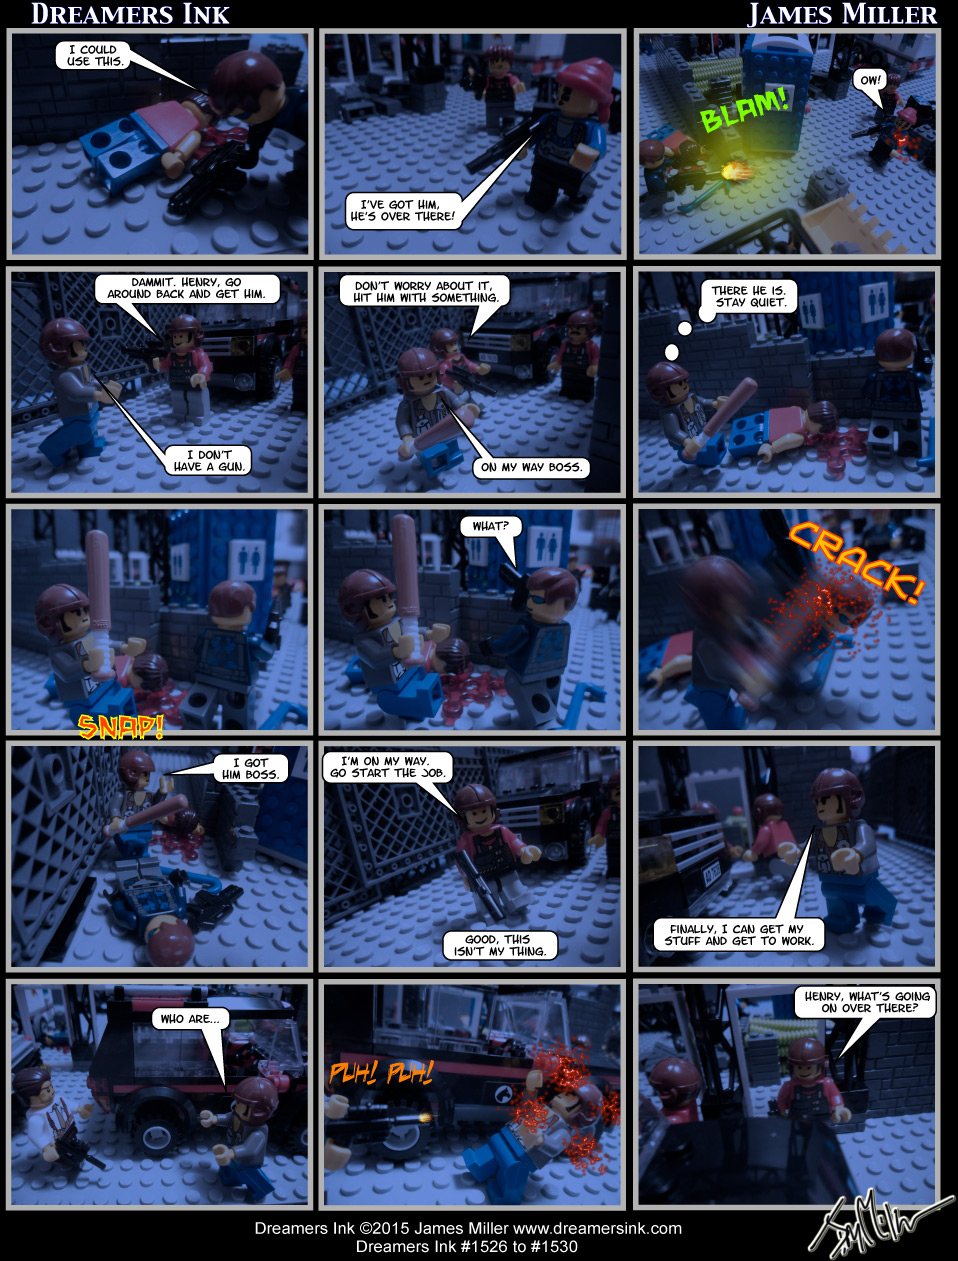 Strips #1526 To #1530